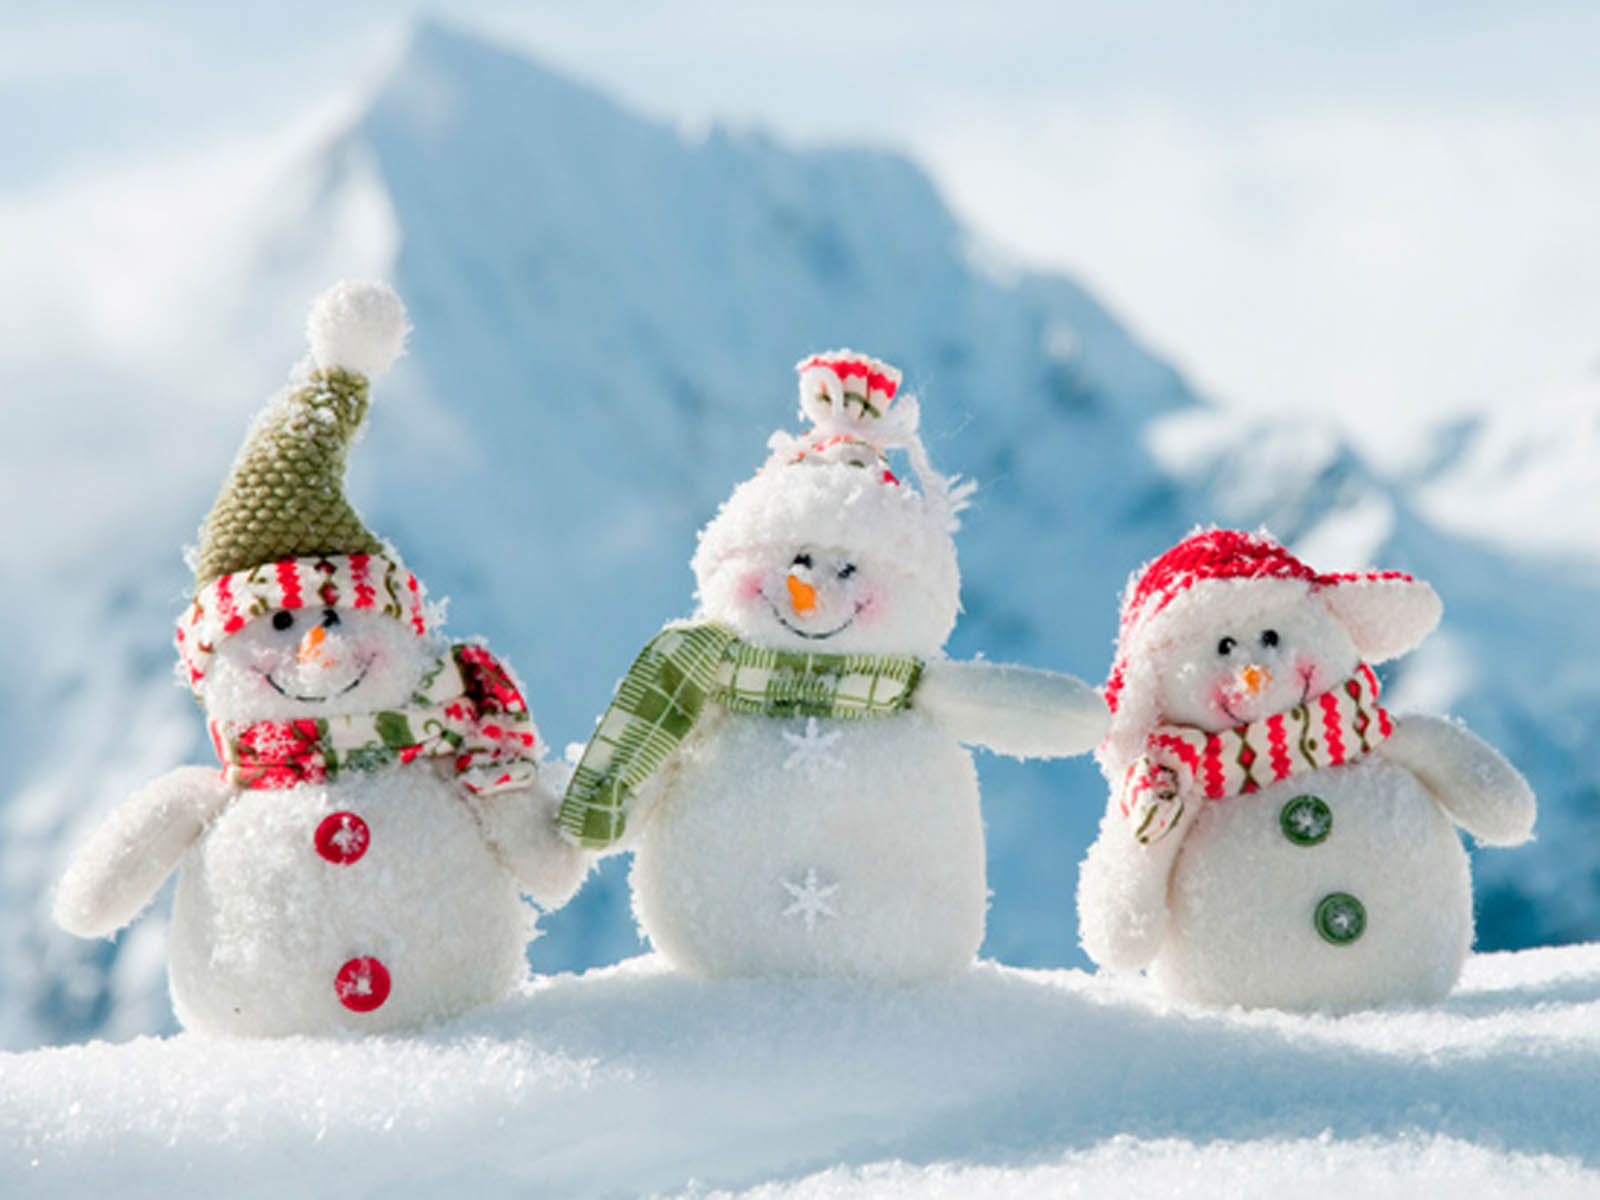 Wallpapers Snowman Desktop And Backgrounds 1600x1200